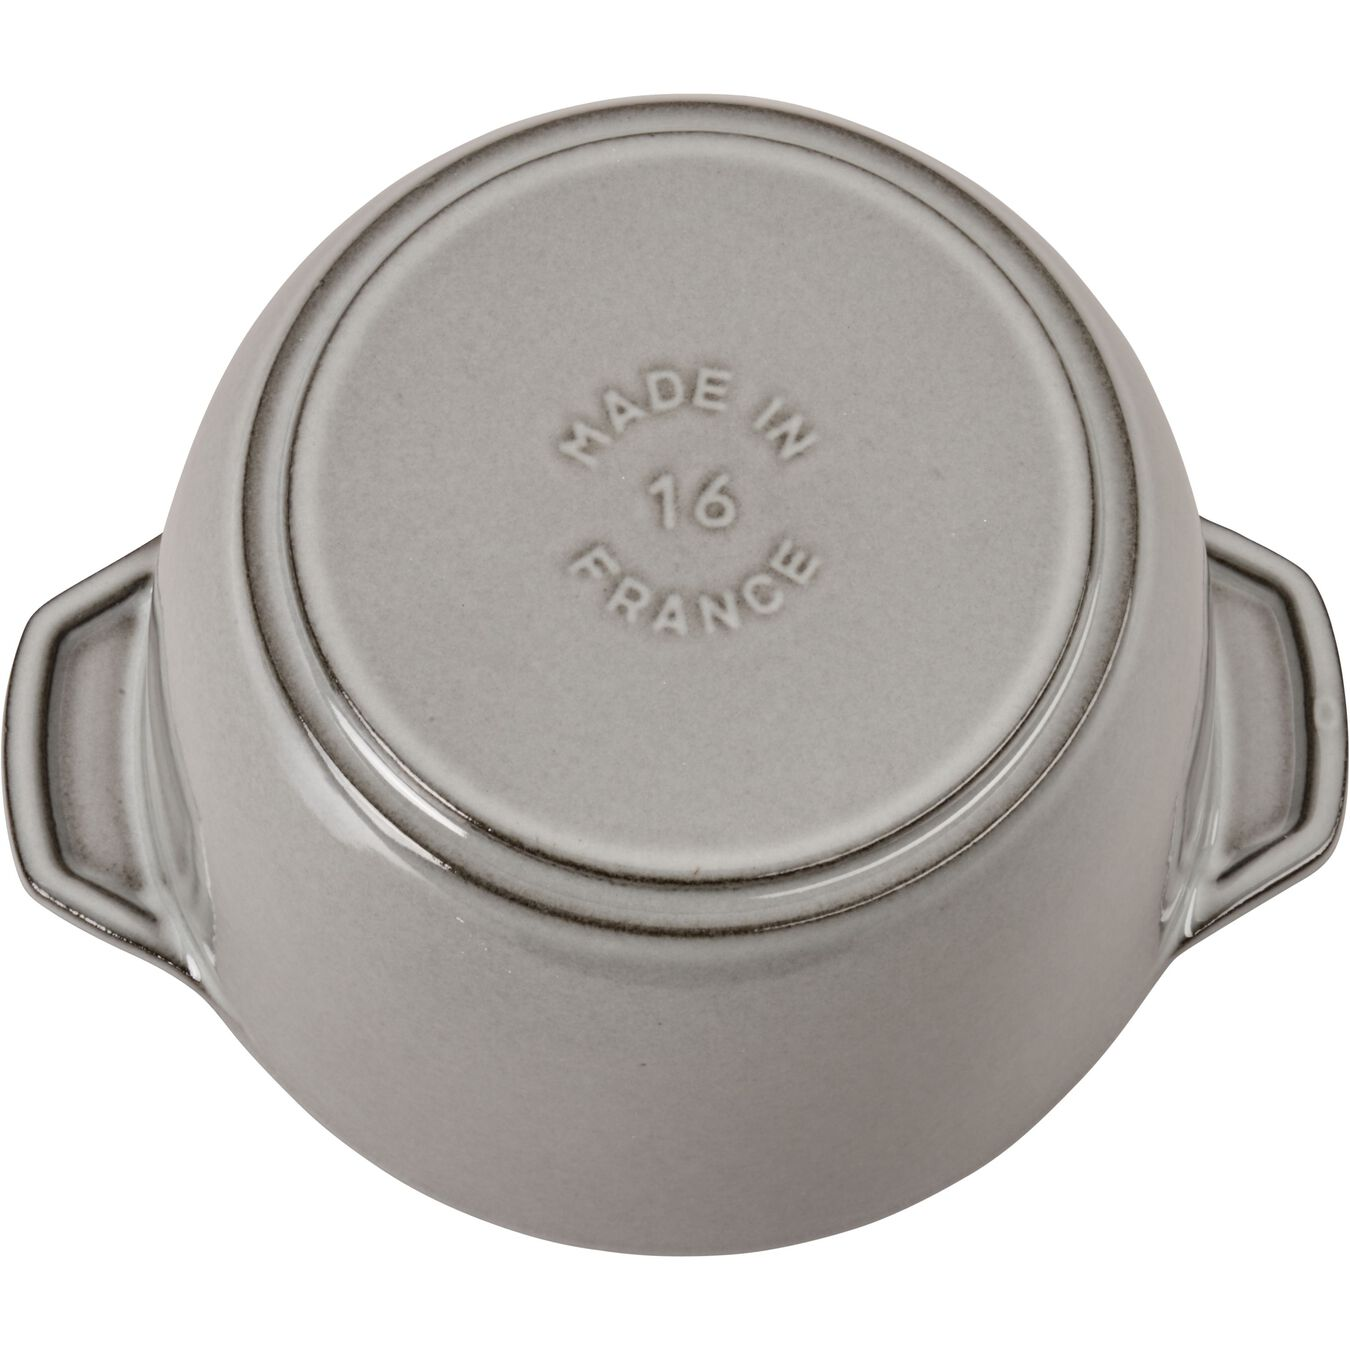 1.5 l Cast iron round Rice Cocotte, Graphite-Grey,,large 9